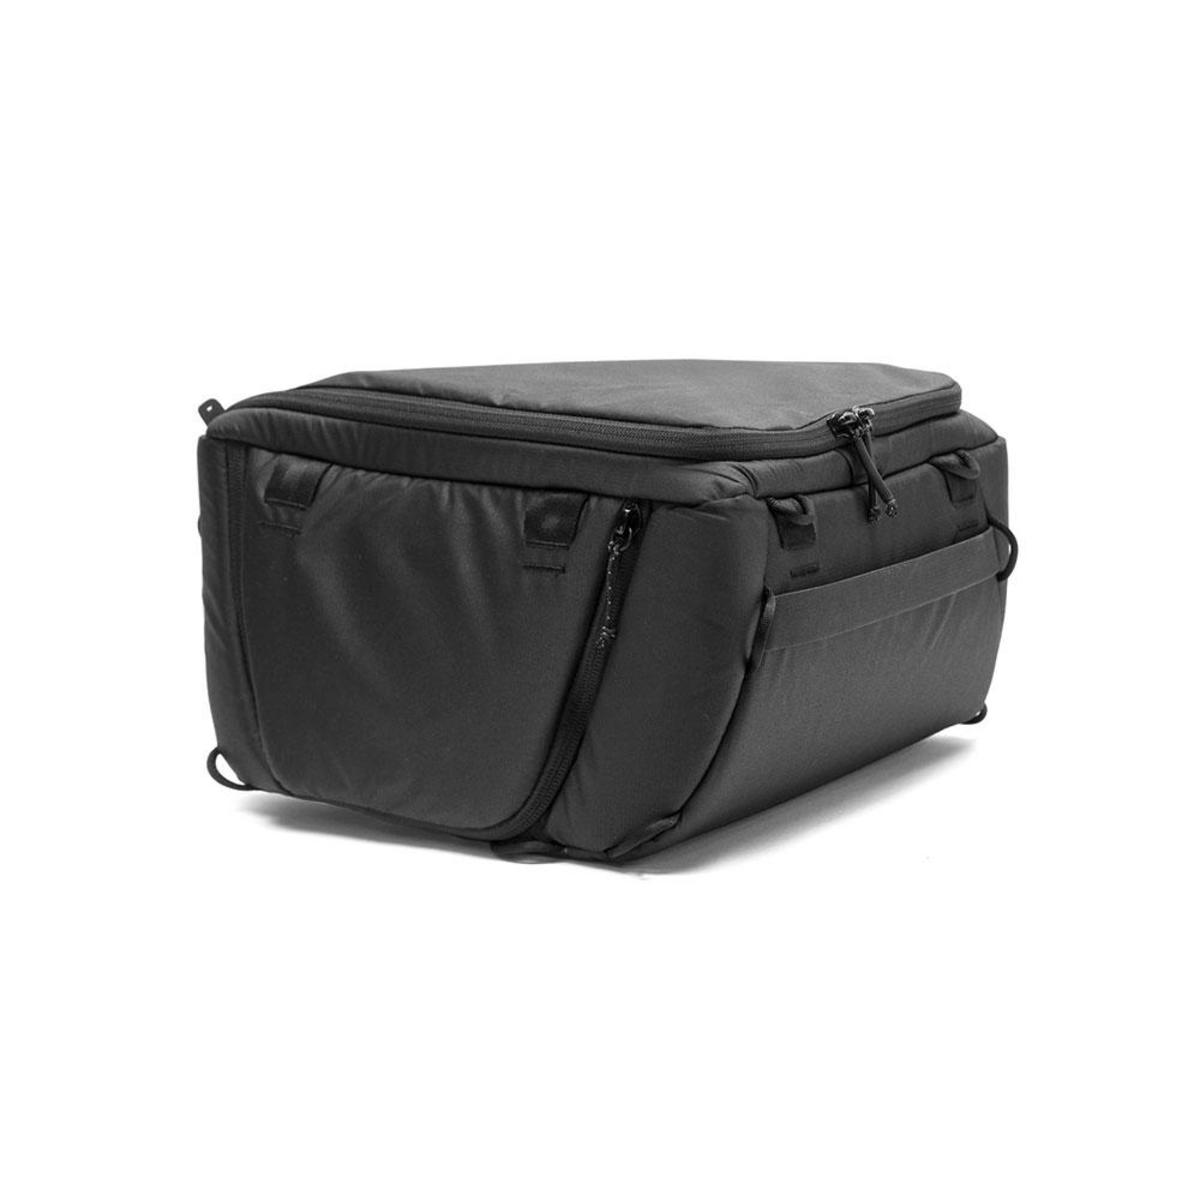 CAMERA CUBE Bag BackPack MultiFunction DSRL Bag MEDIUM